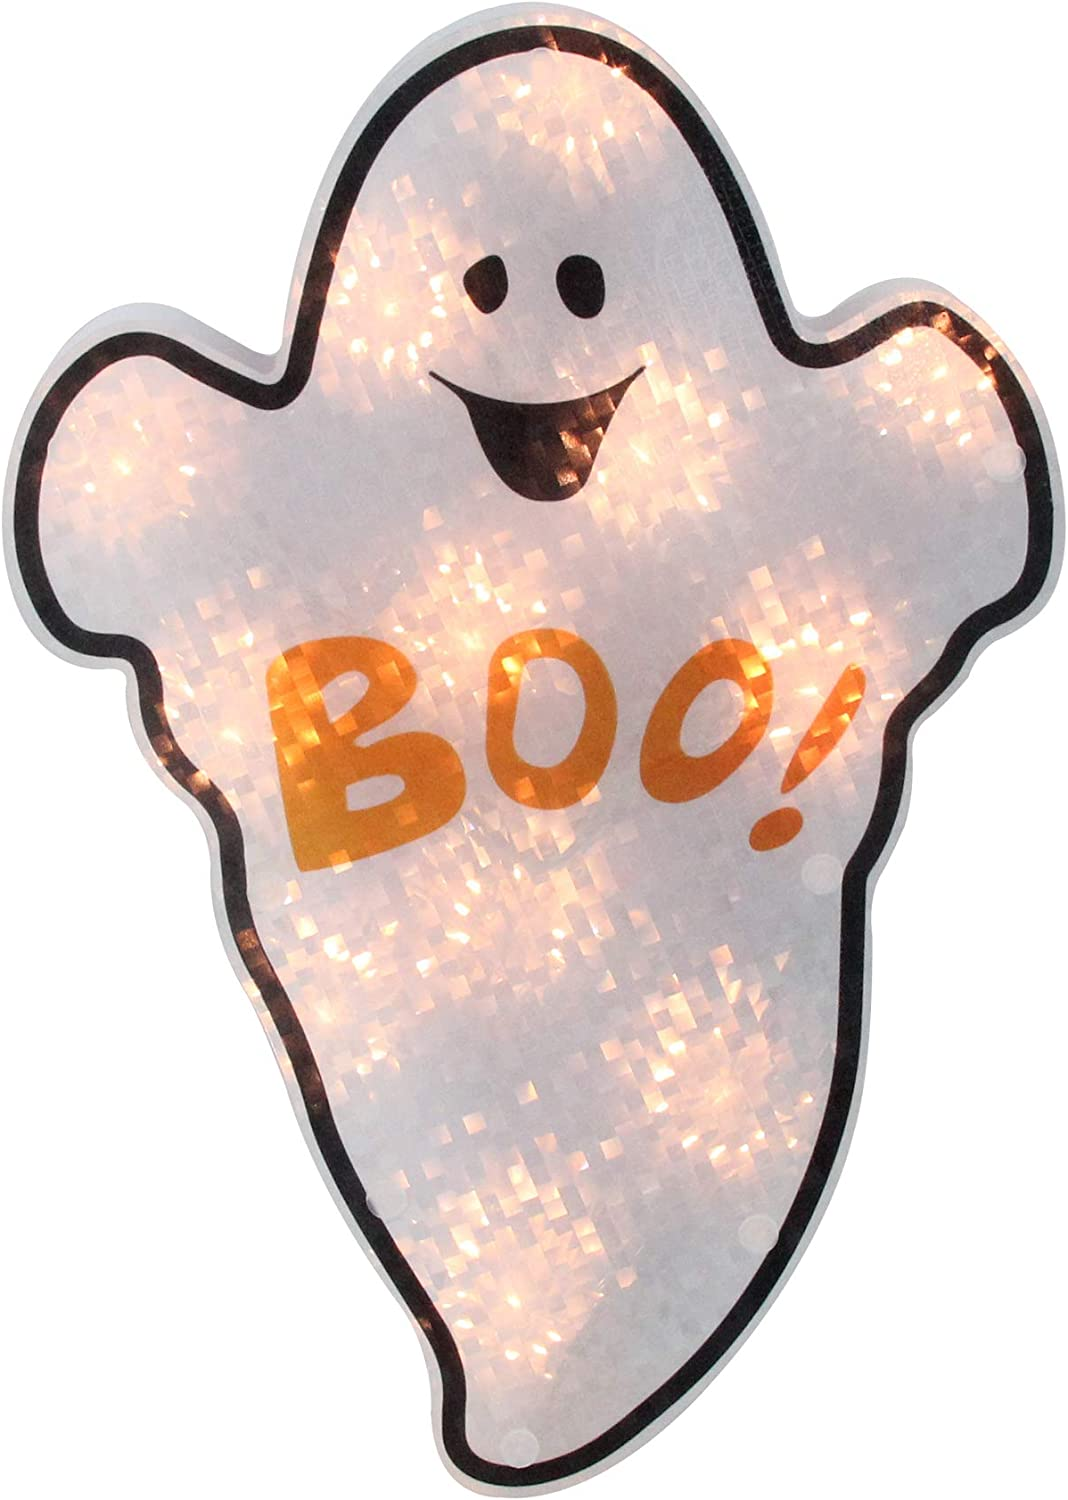 """Northlight 12"""" Lighted White Holographic Ghost Halloween Window Silhouette Decor"""